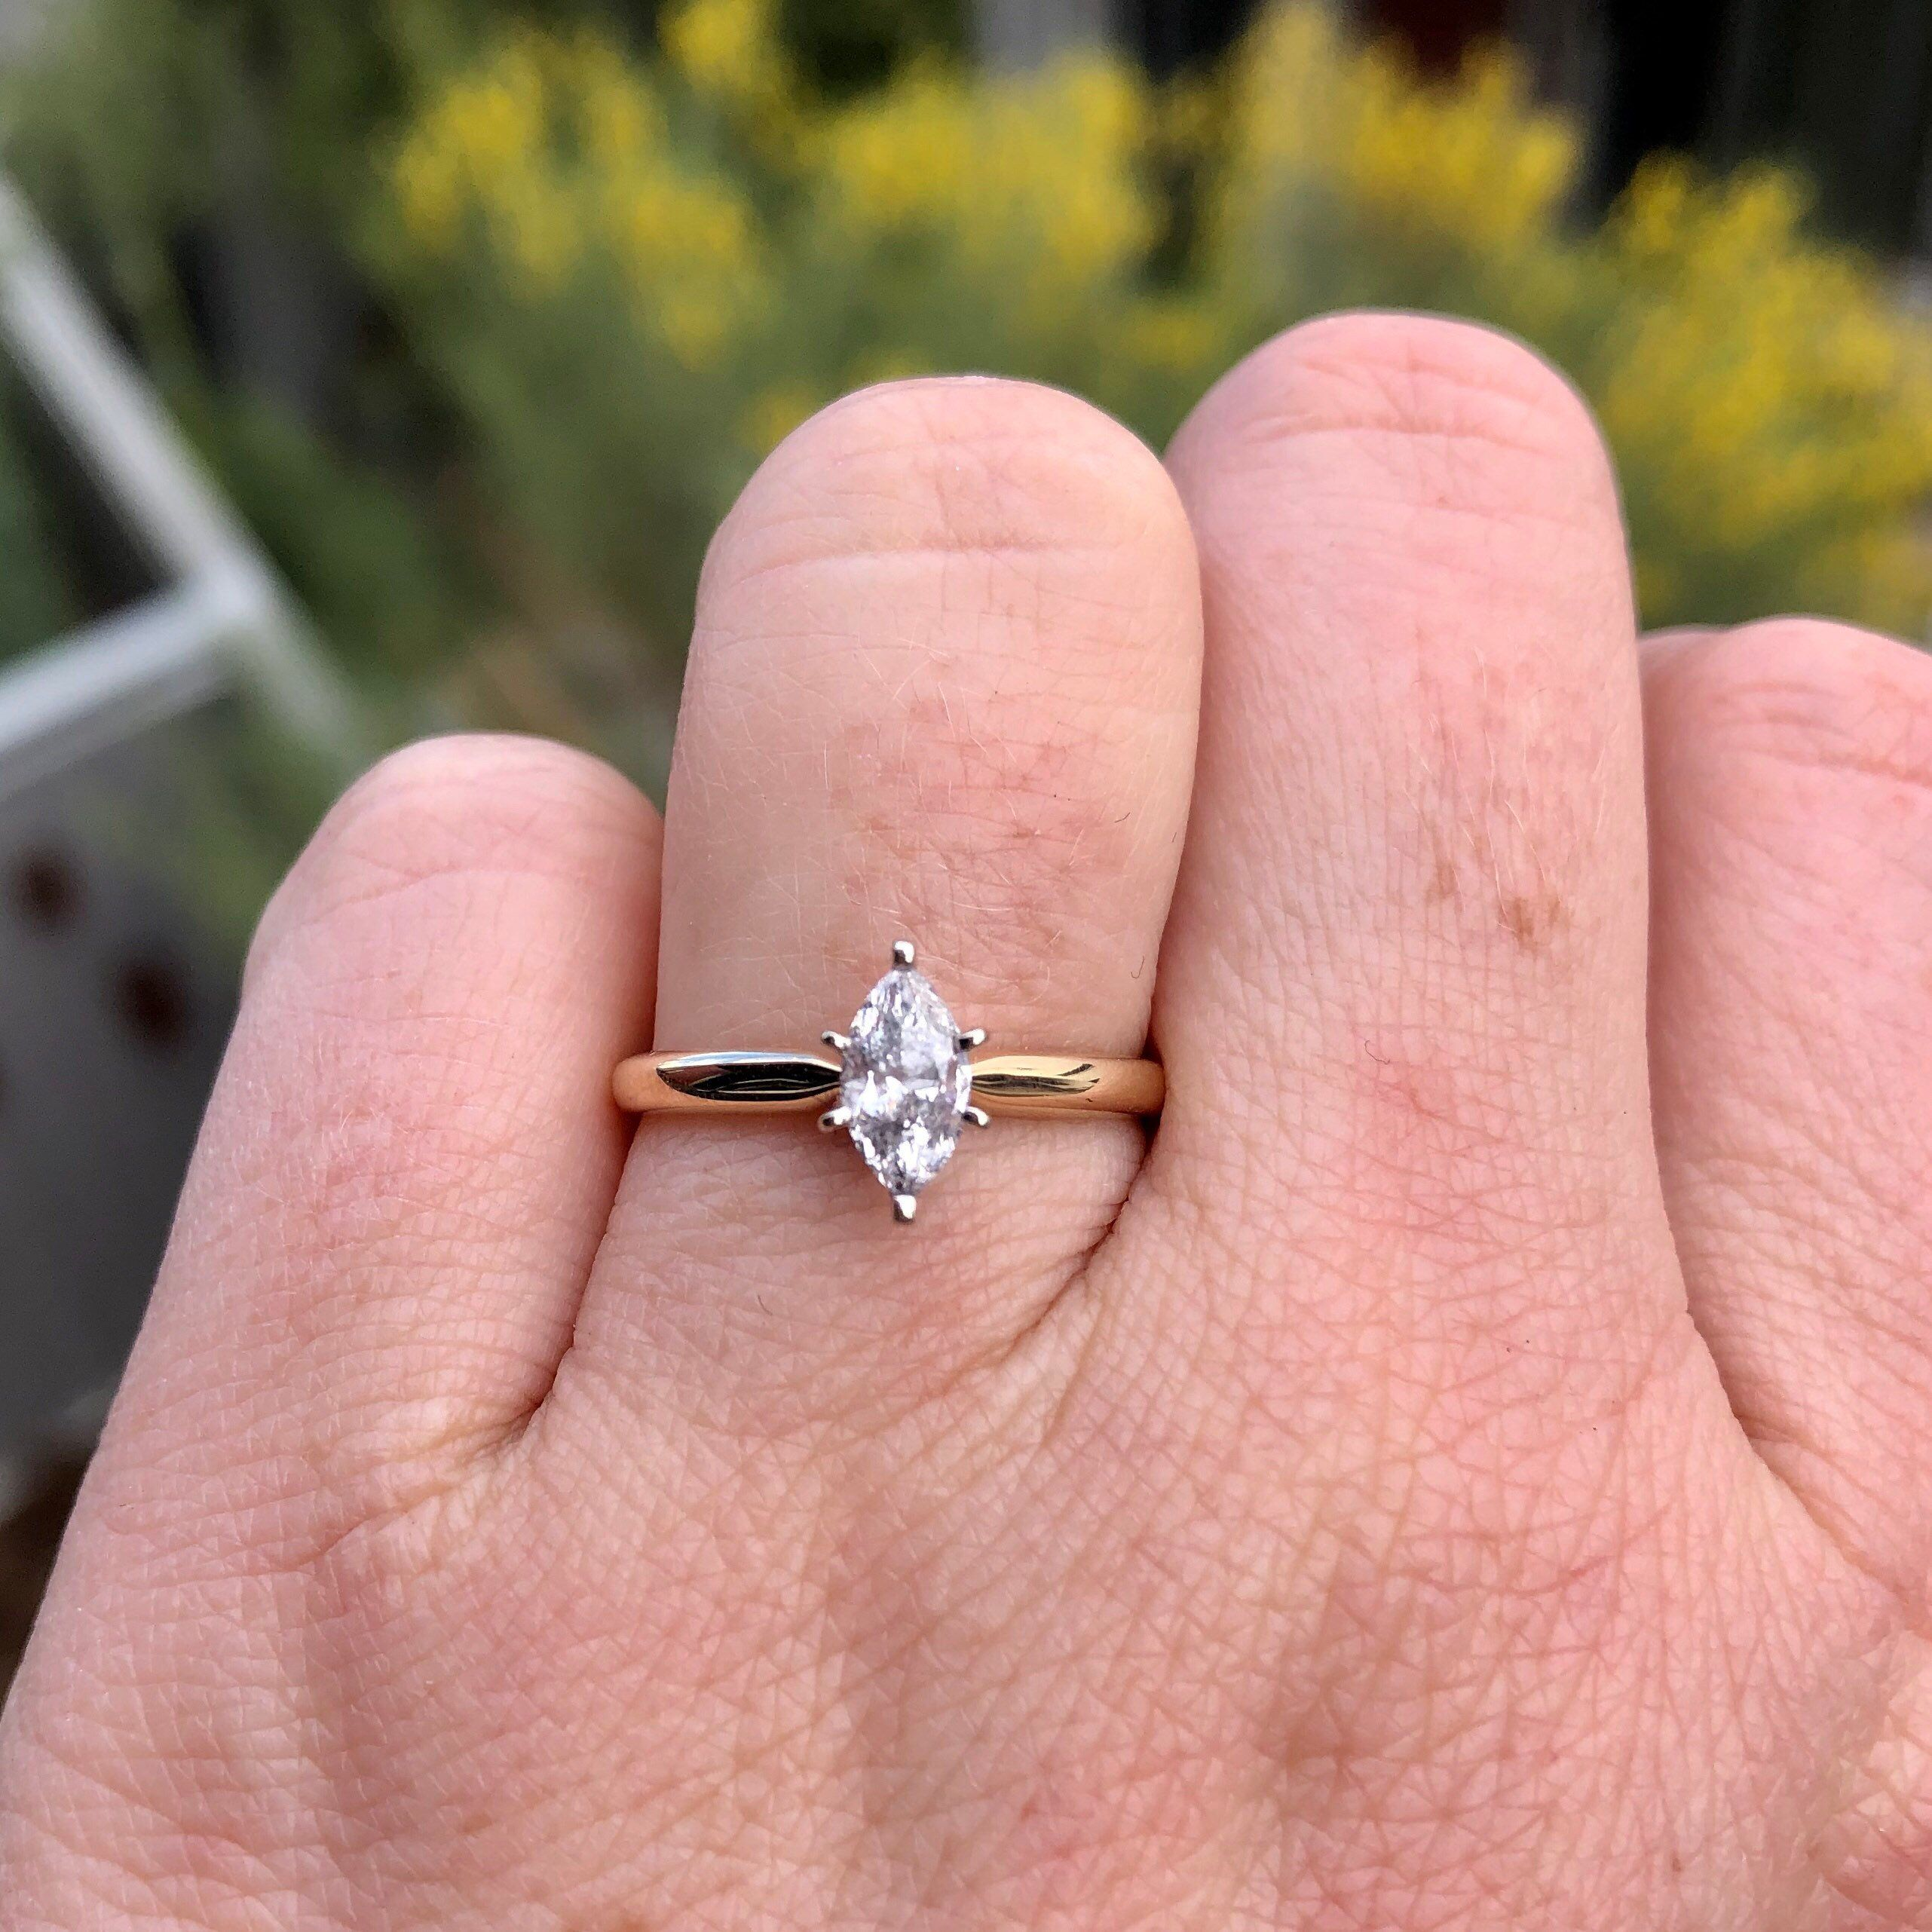 Marquise Diamond Engagement Ring Wide Band 14k Gold Marquise Diamond Engagement Ring Engagement Rings Marquise Wide Band Engagement Ring